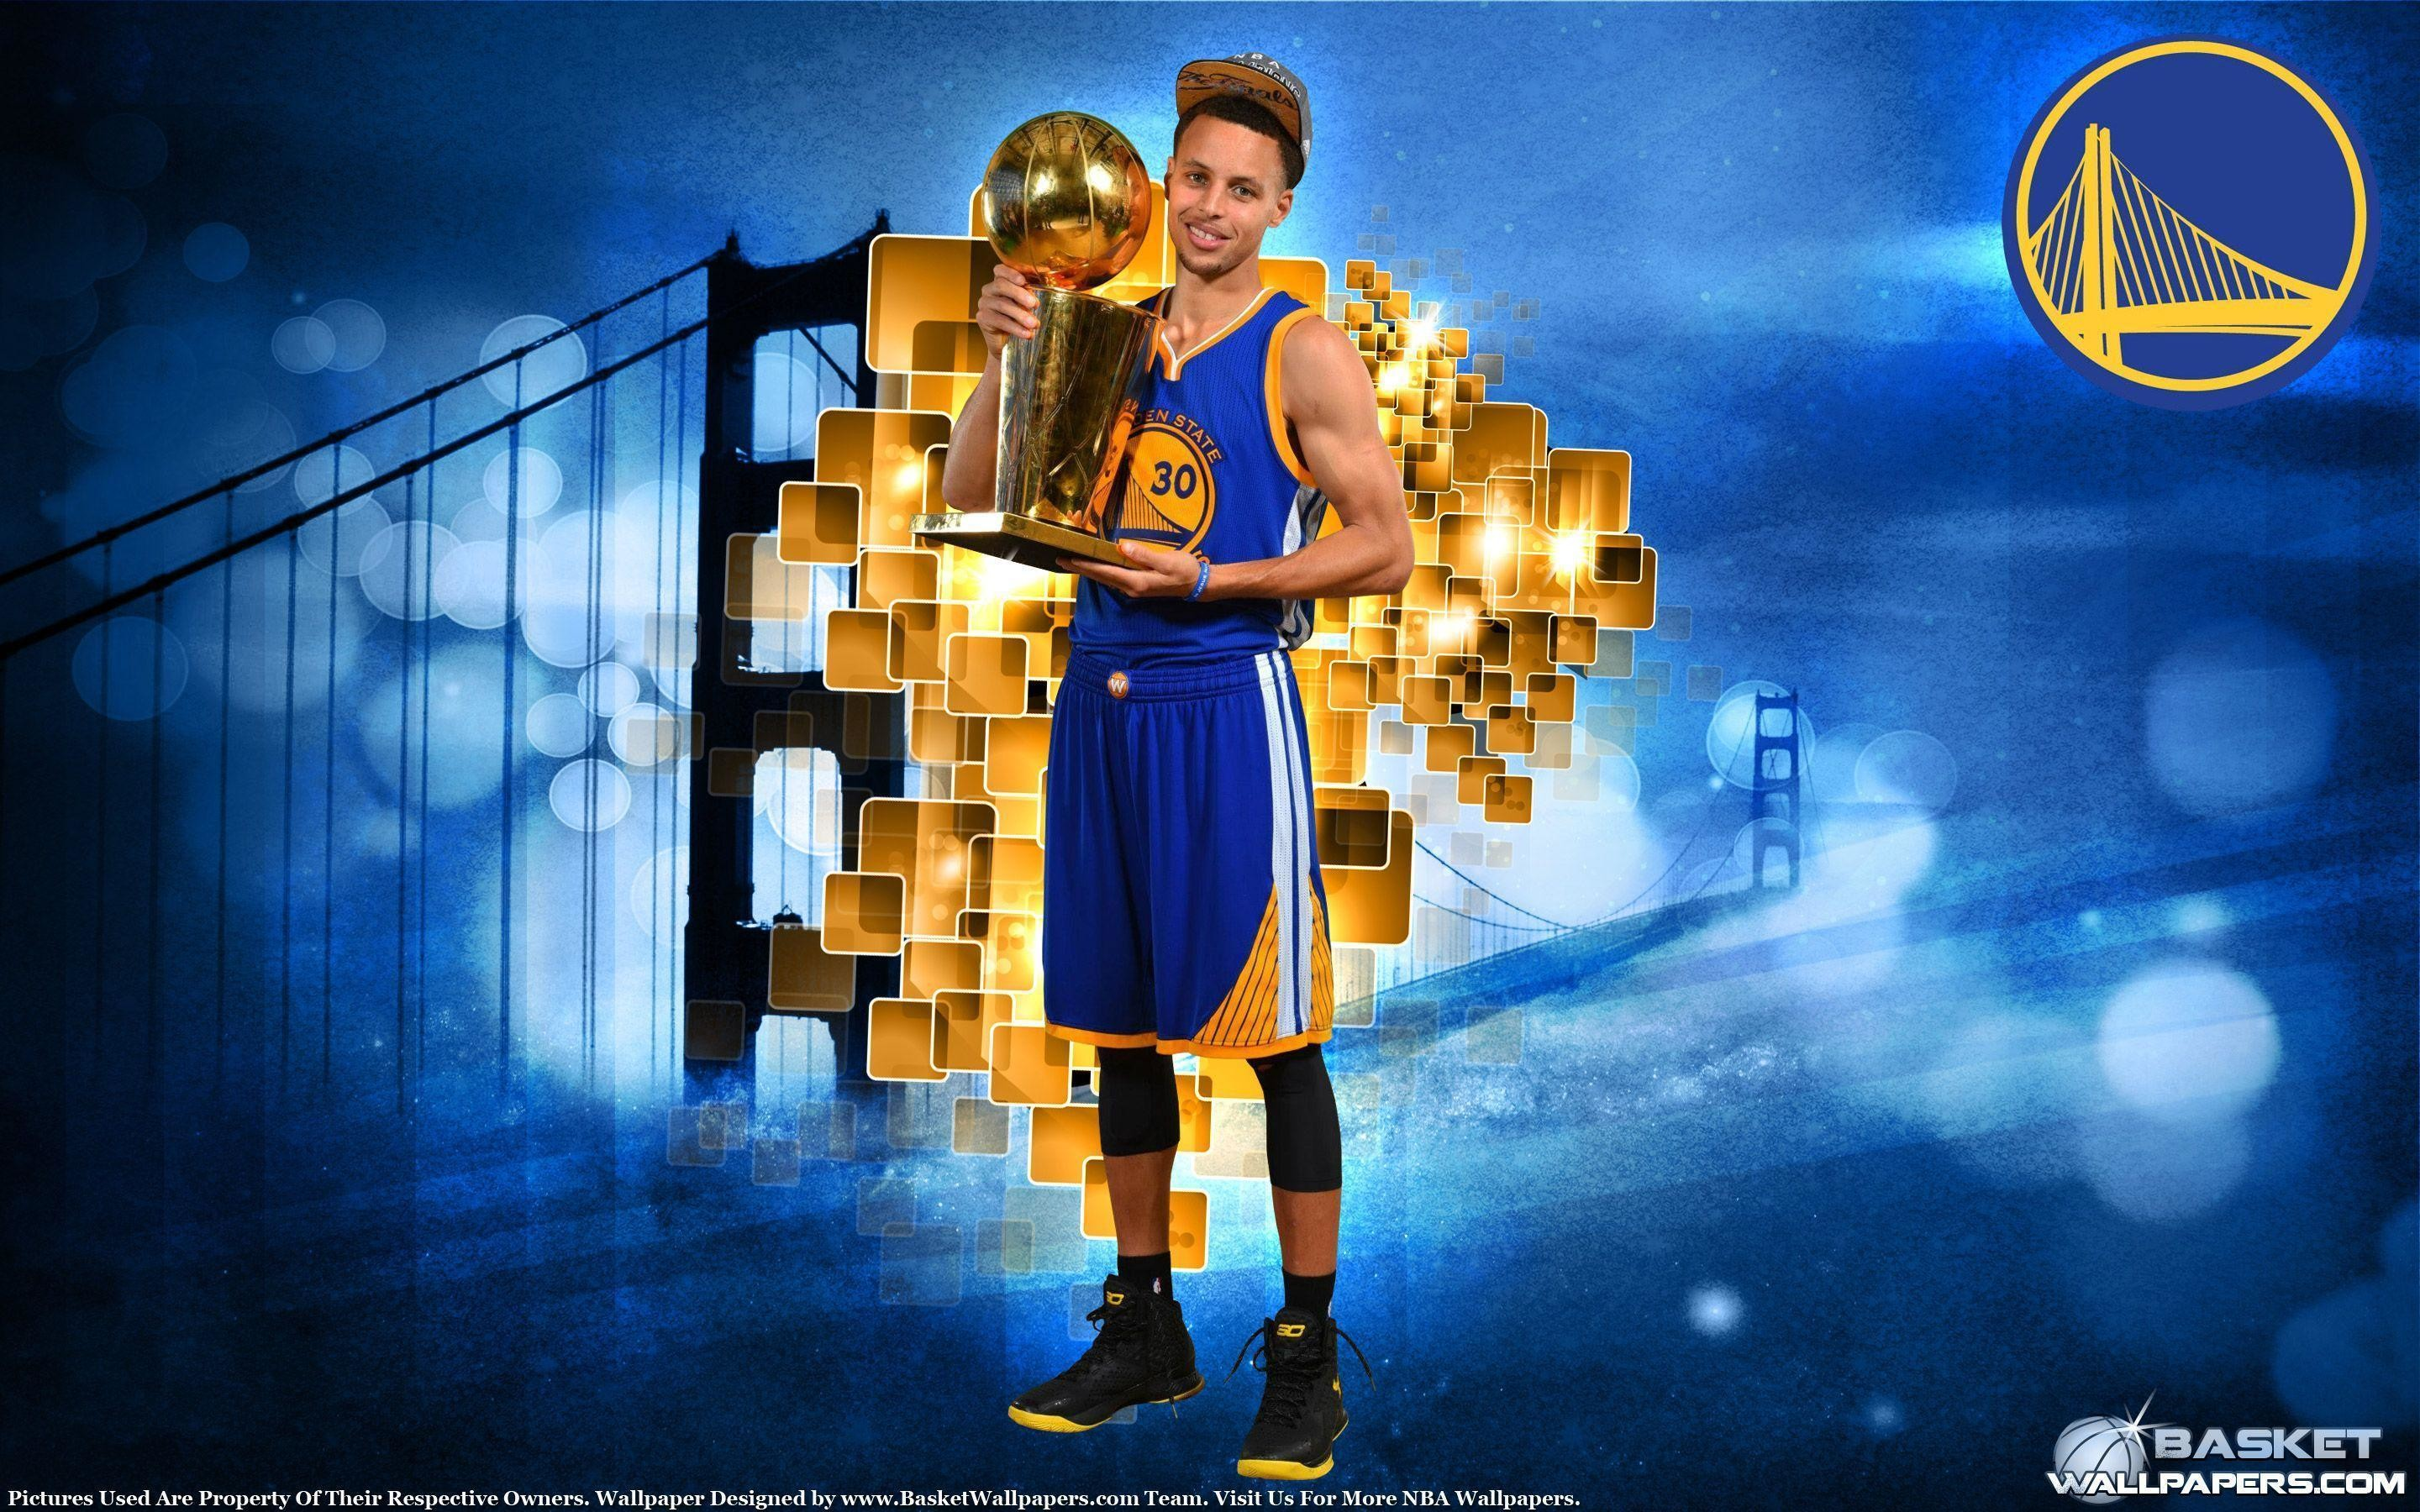 2880x1800 Stephen Curry Wallpapers | Basketball Wallpapers at .